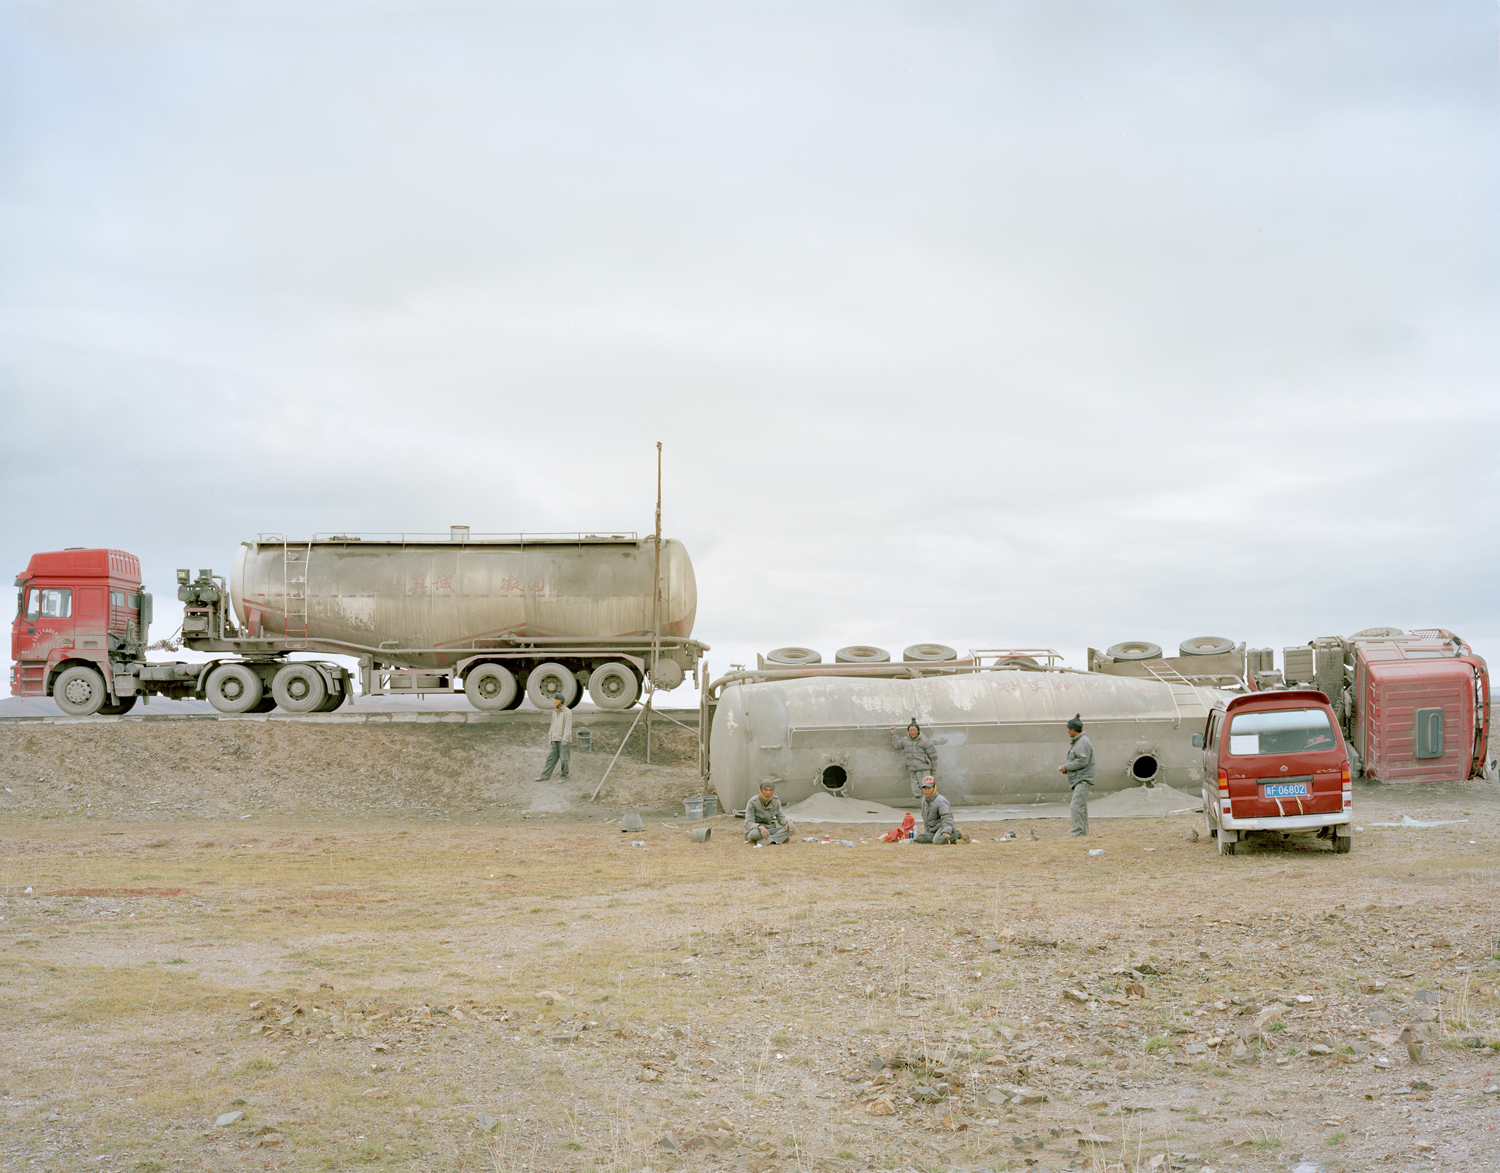 Overturned cement truck, Qinghai province.